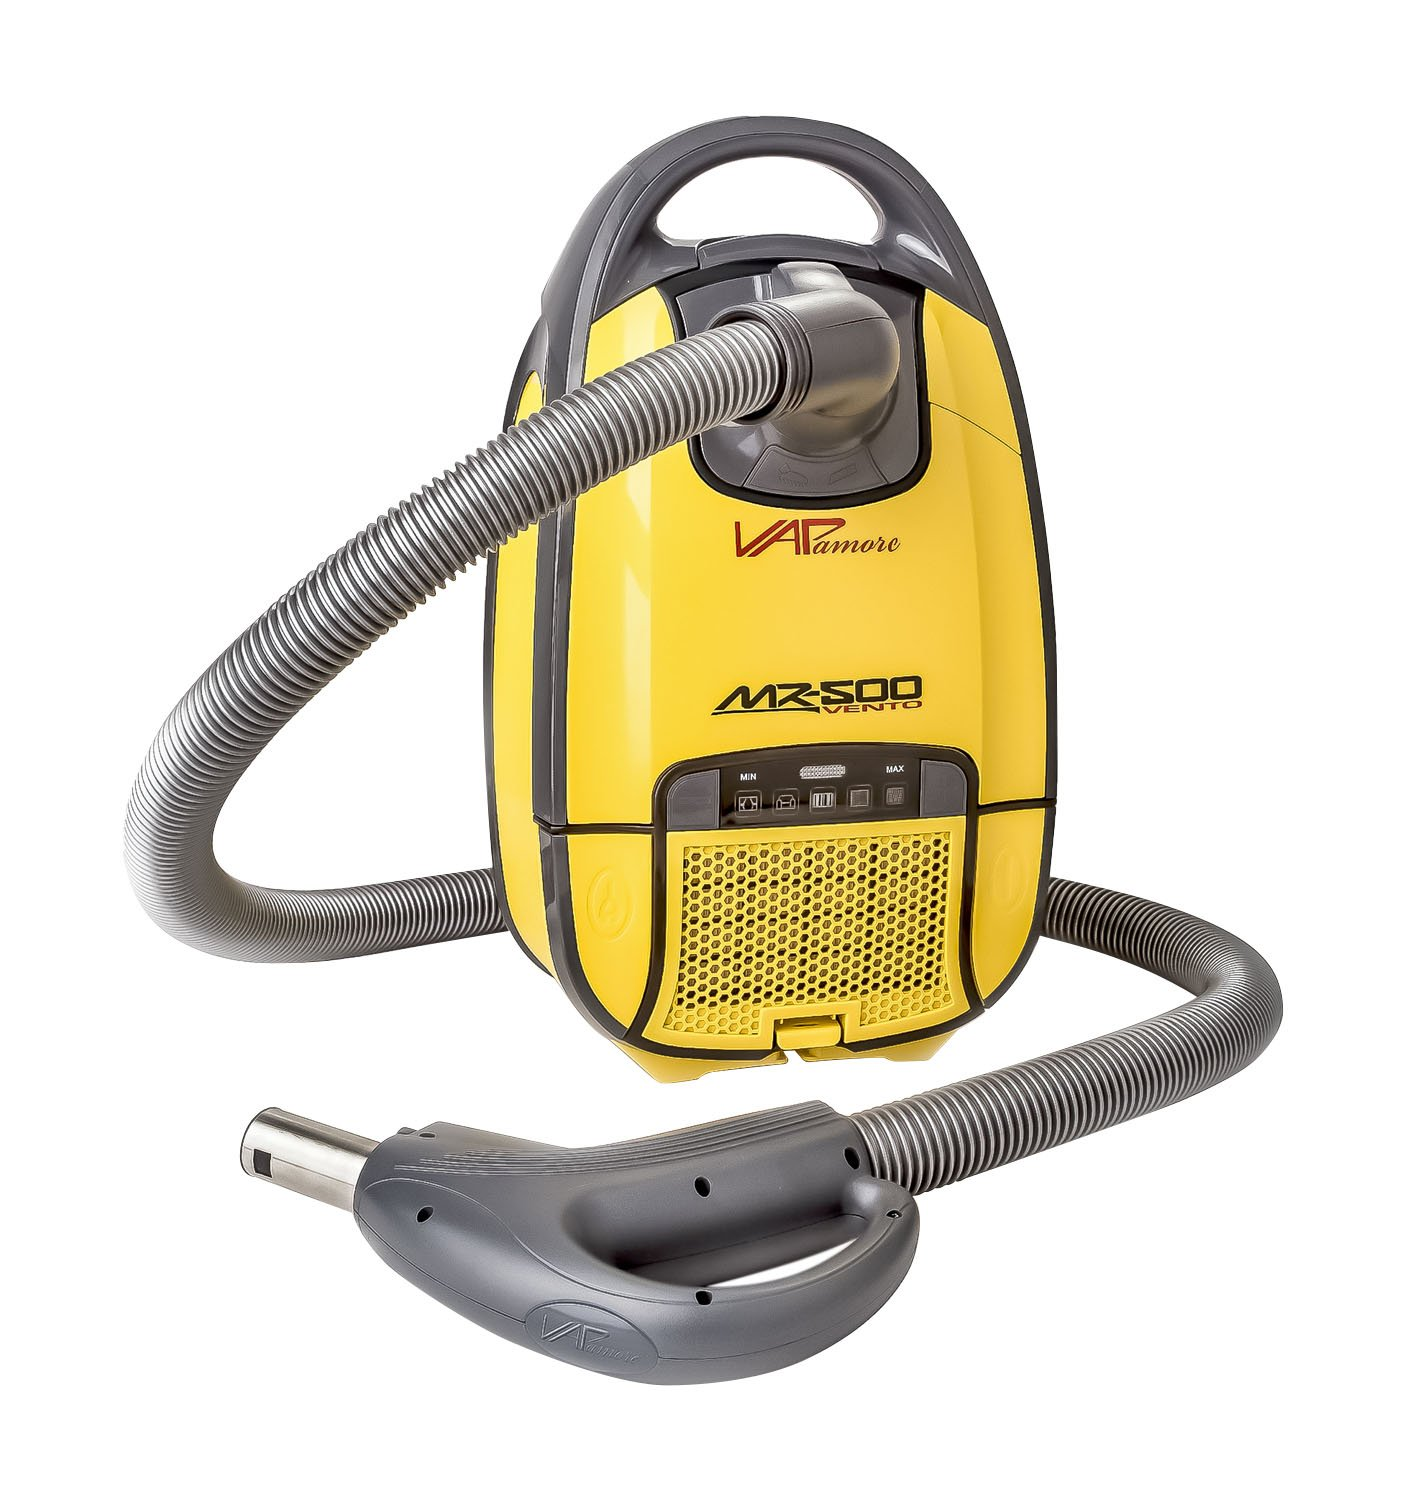 Vapamore MR-500 Vento Canister Vacuum - Corded